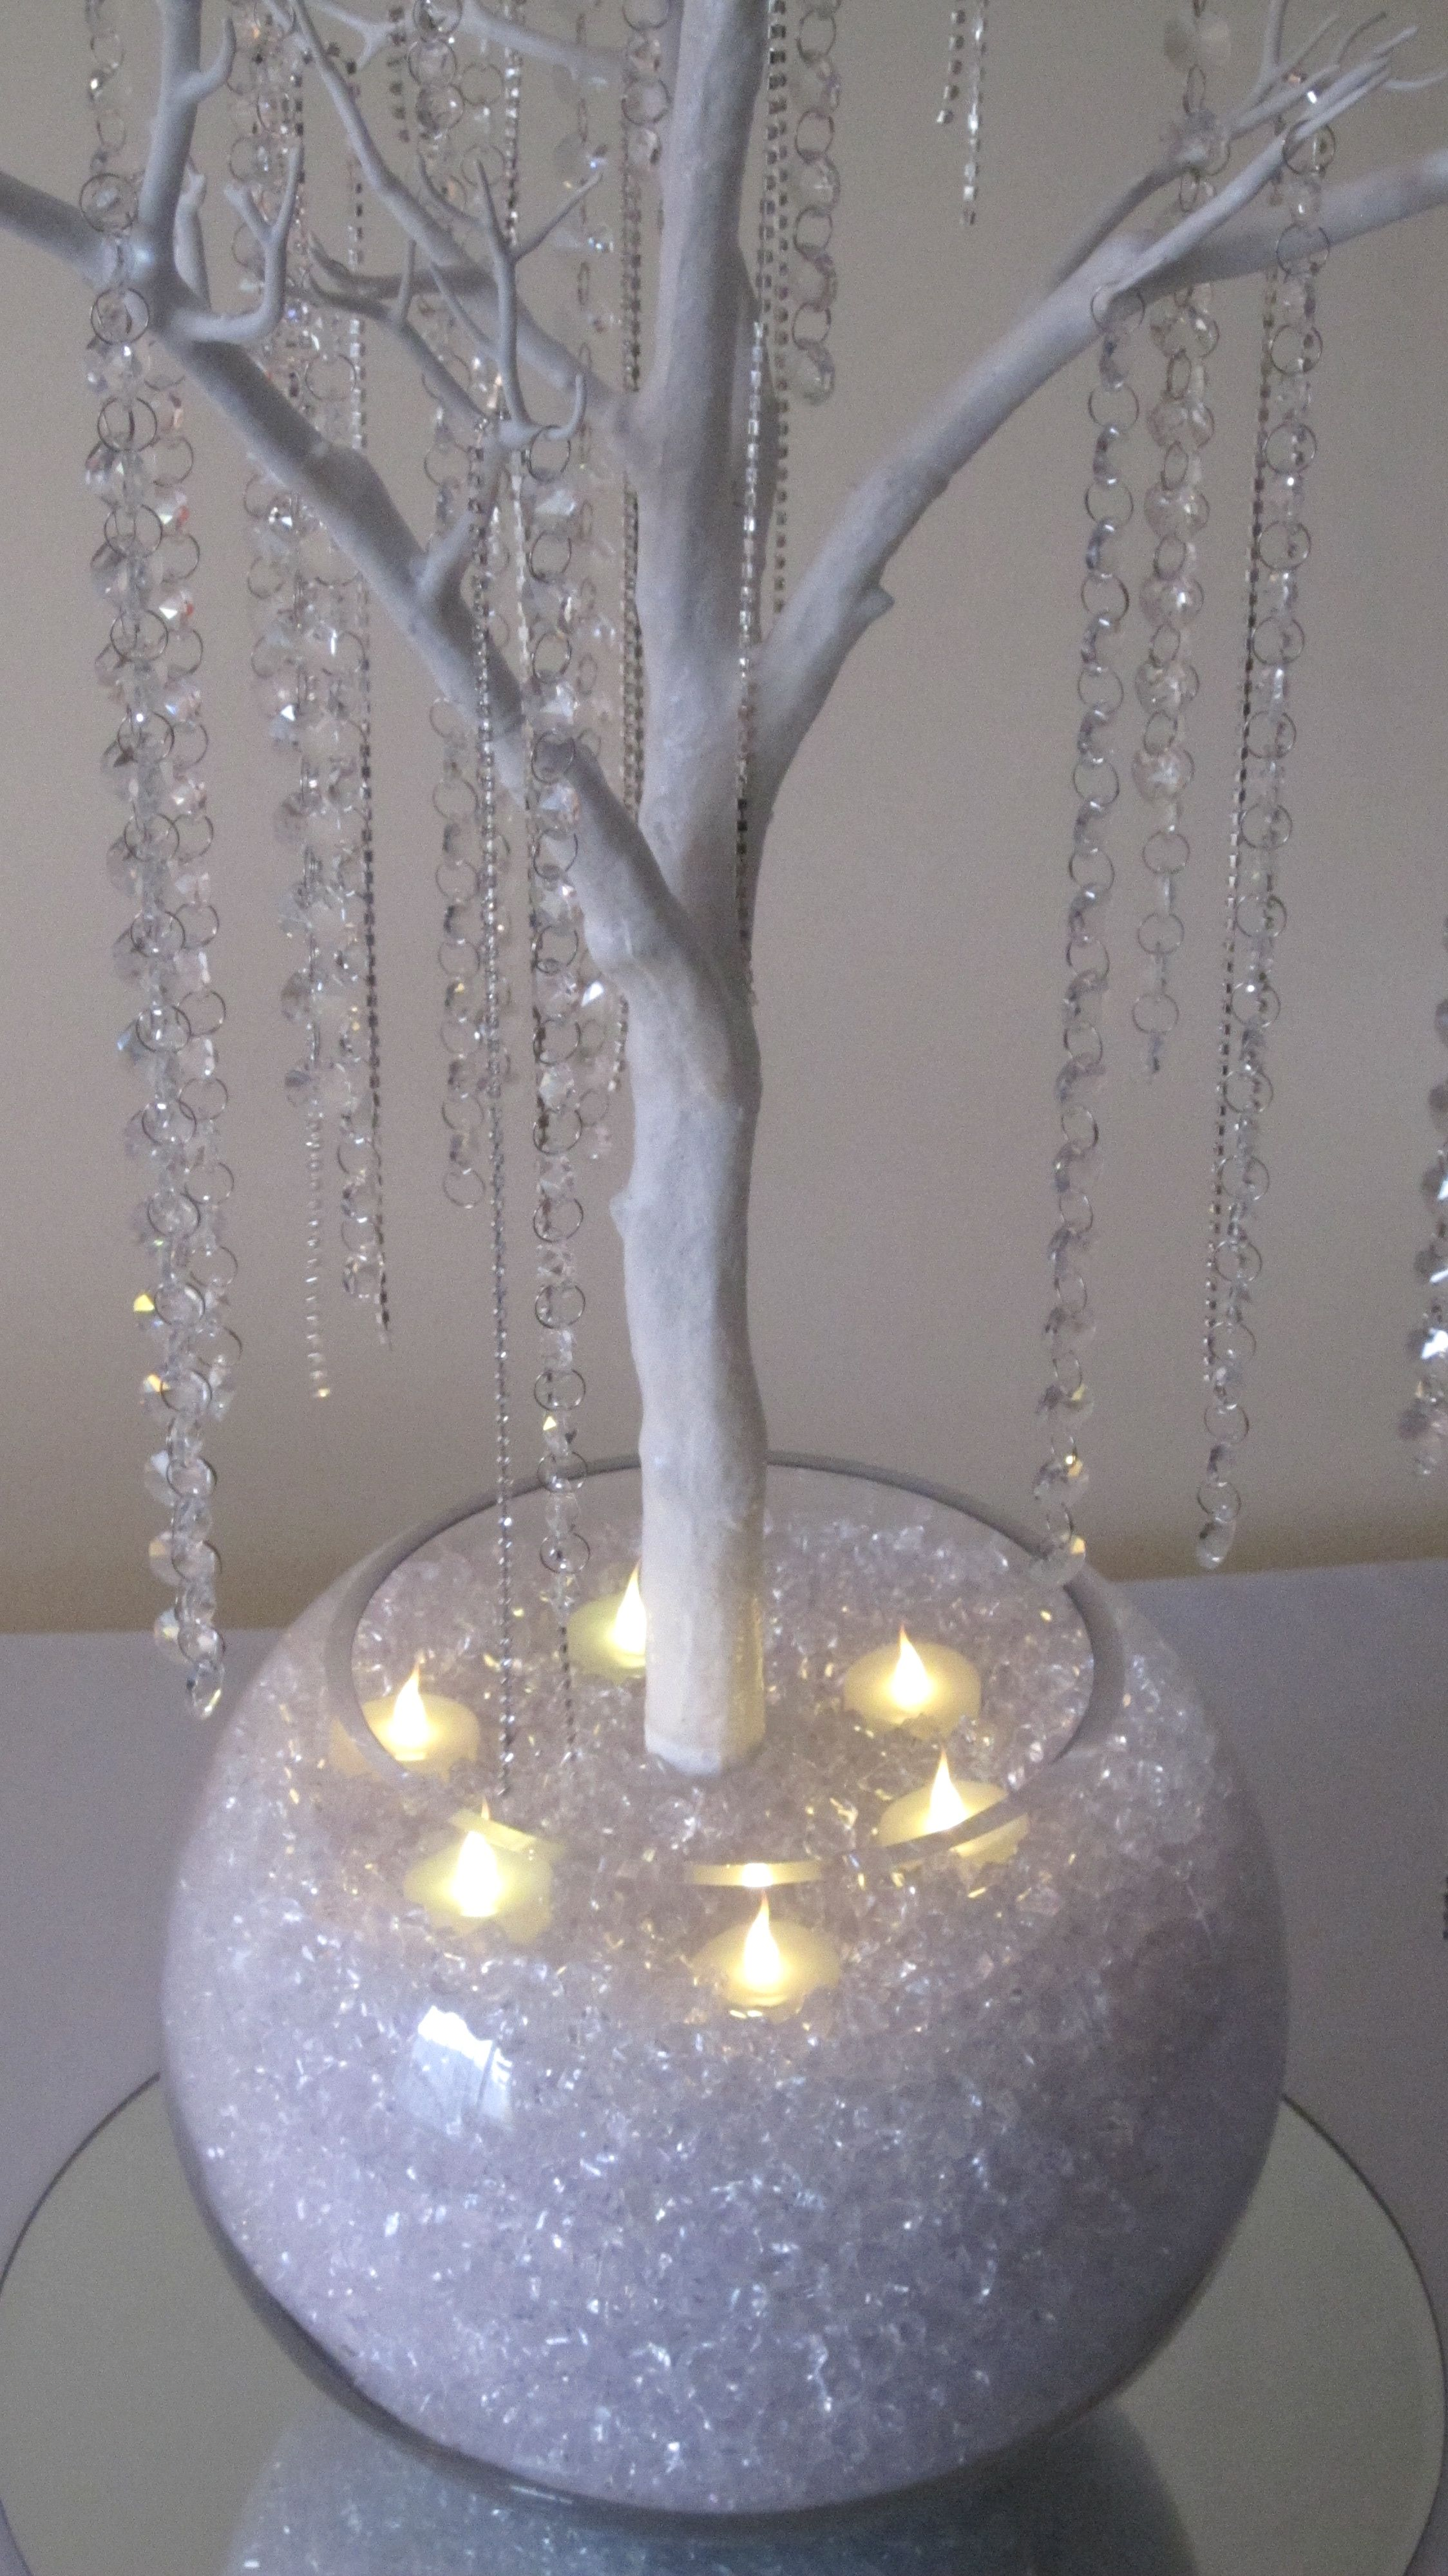 These Crystal Trees Can Be Used As A Show Stopping Luxurious Table Centrepiece They Look Amazing Christmas Decorations Crystal Tree Wedding Guest Book Table